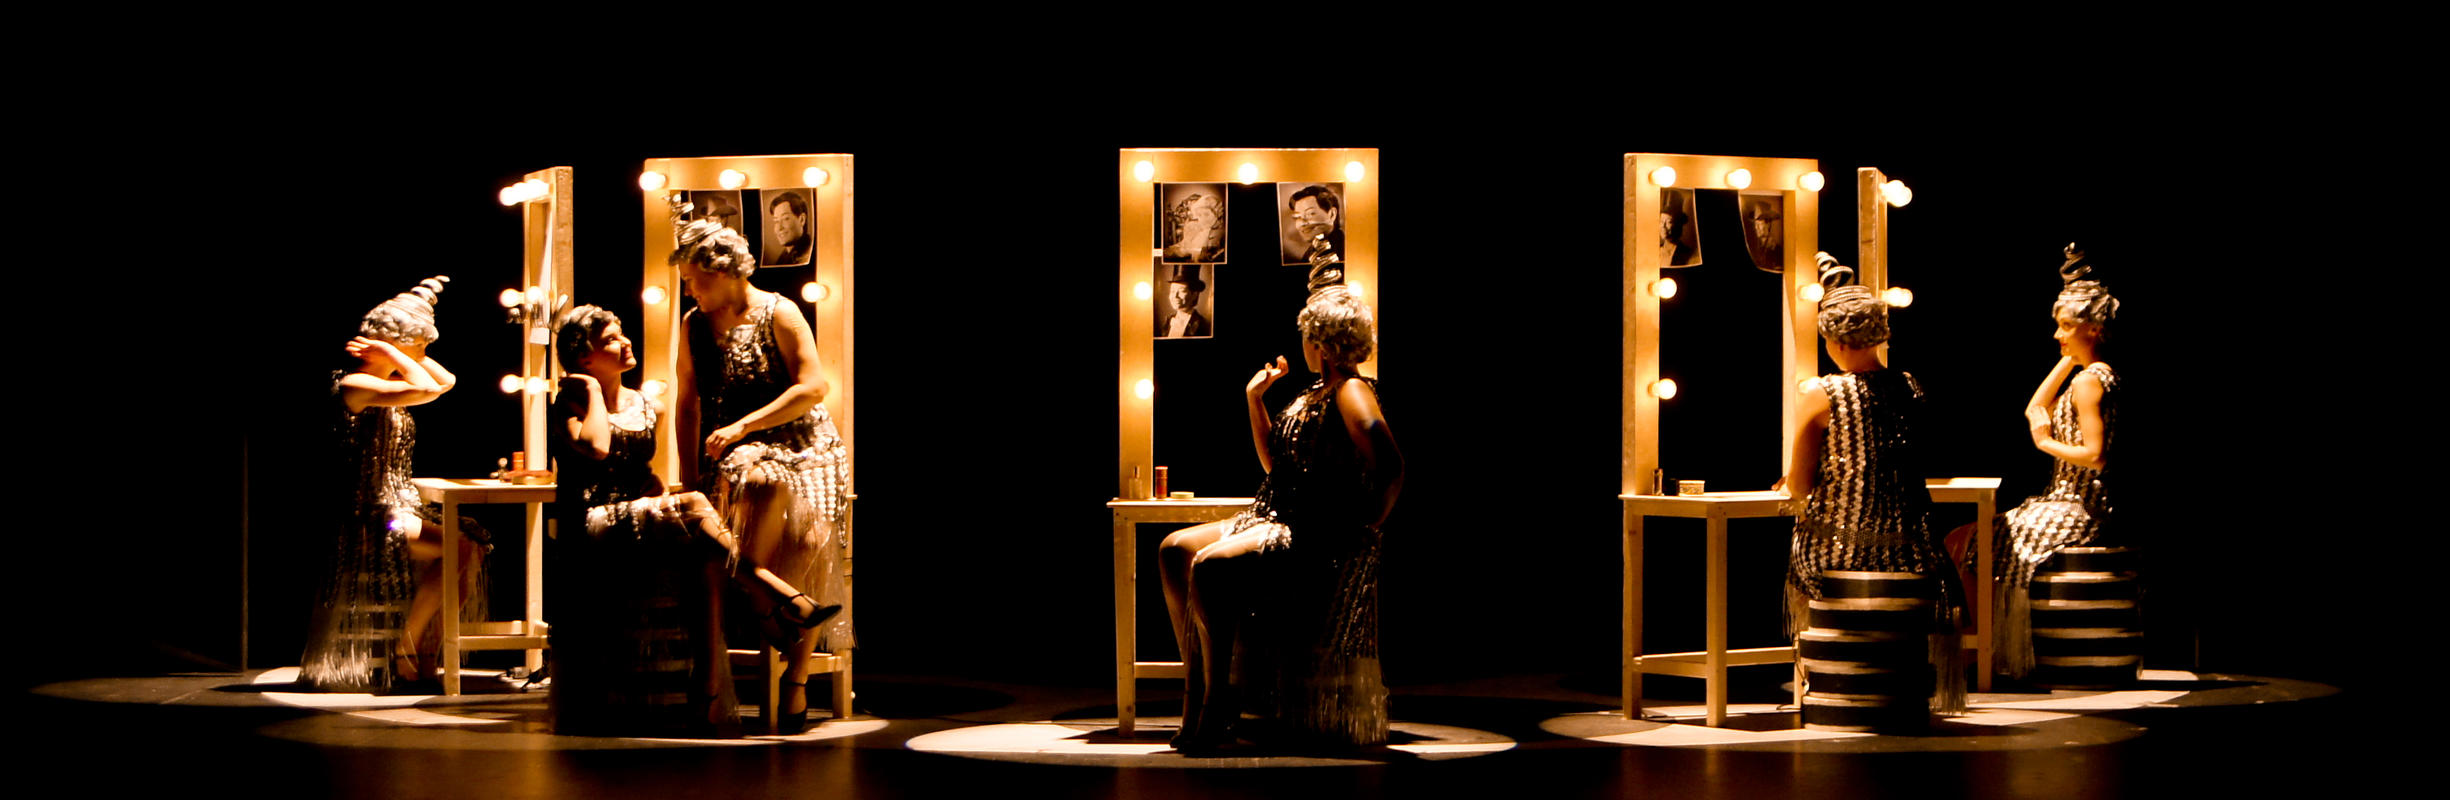 Photograph from Le nozze di Figaro - lighting design by Jake Wiltshire